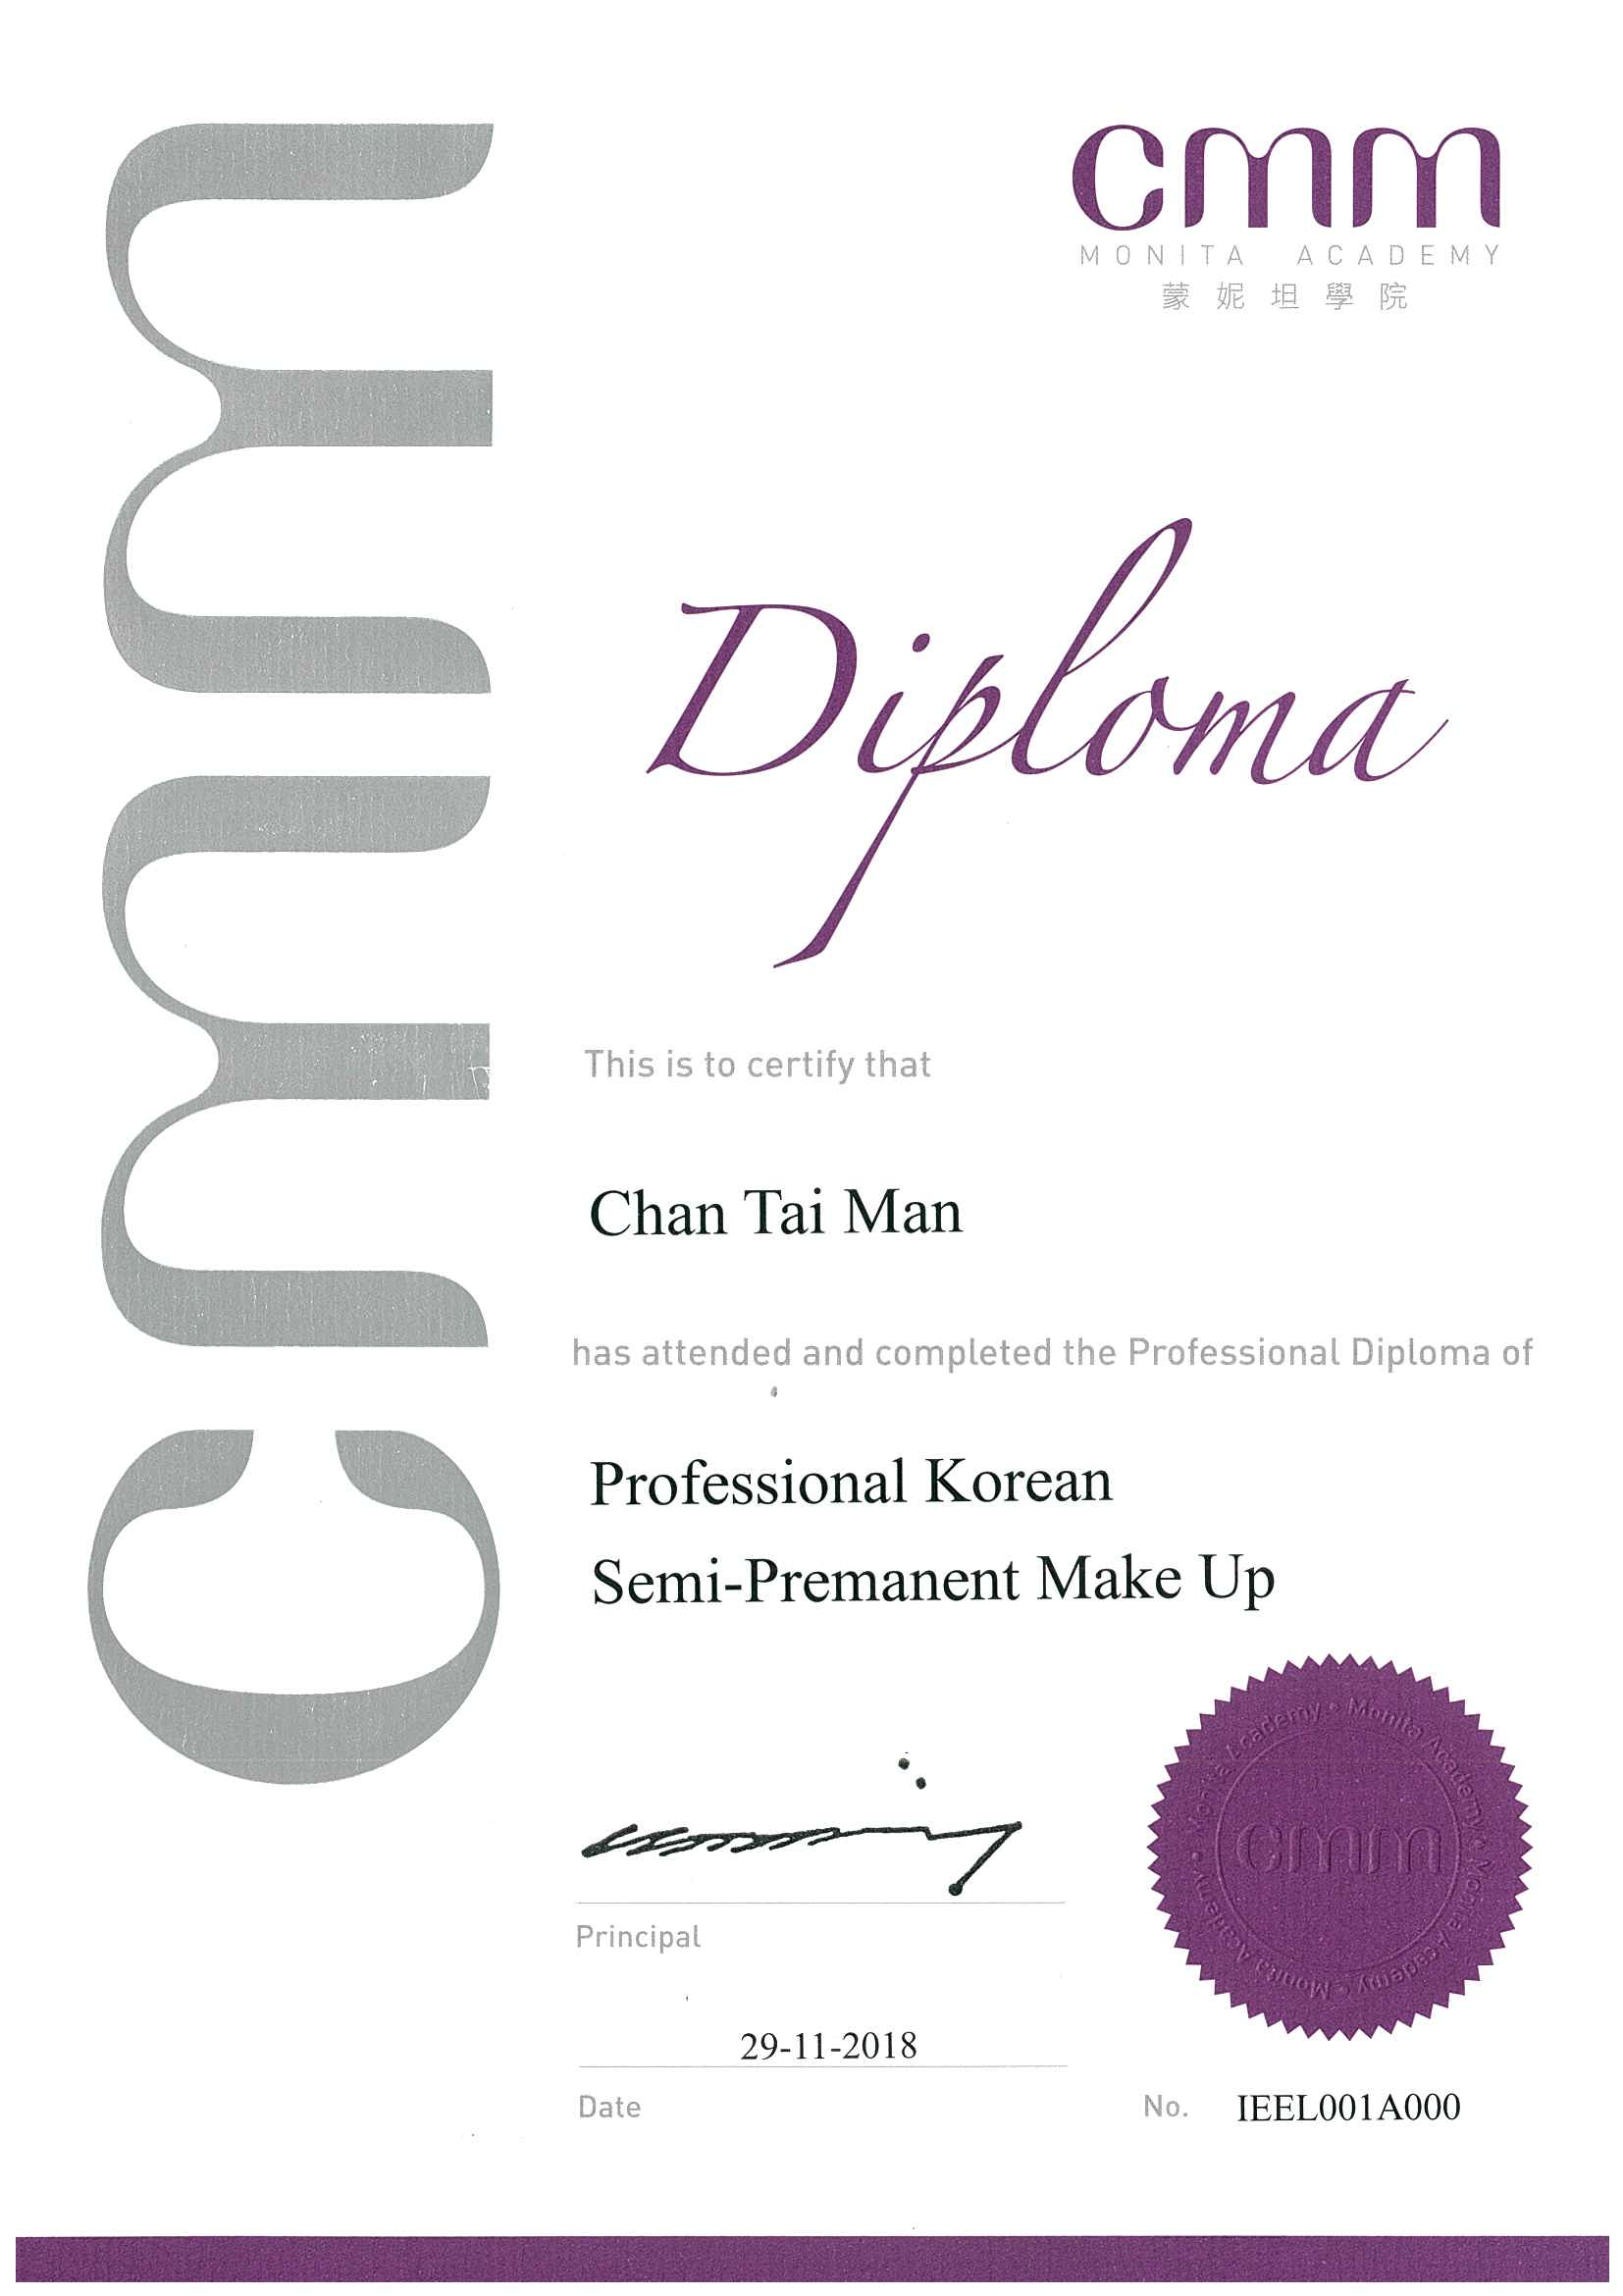 1.CMM Diploma in Professional Korean Semi-Permanent Make Up 29-11-2019 at 11.39.53_Page_1